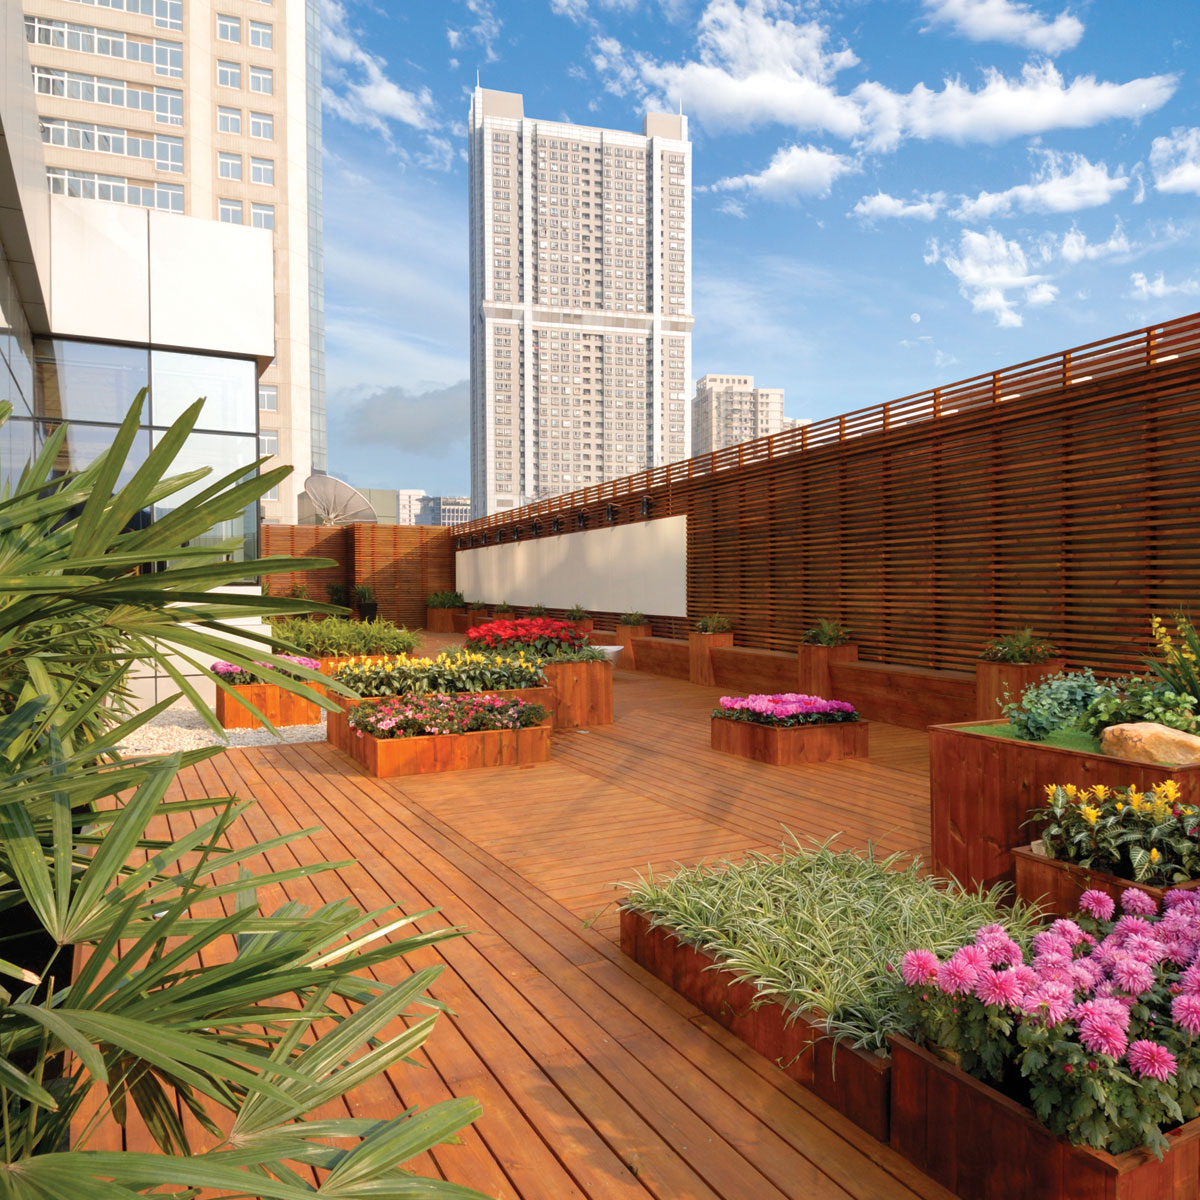 Axis soil amendment solution for rooftop garden